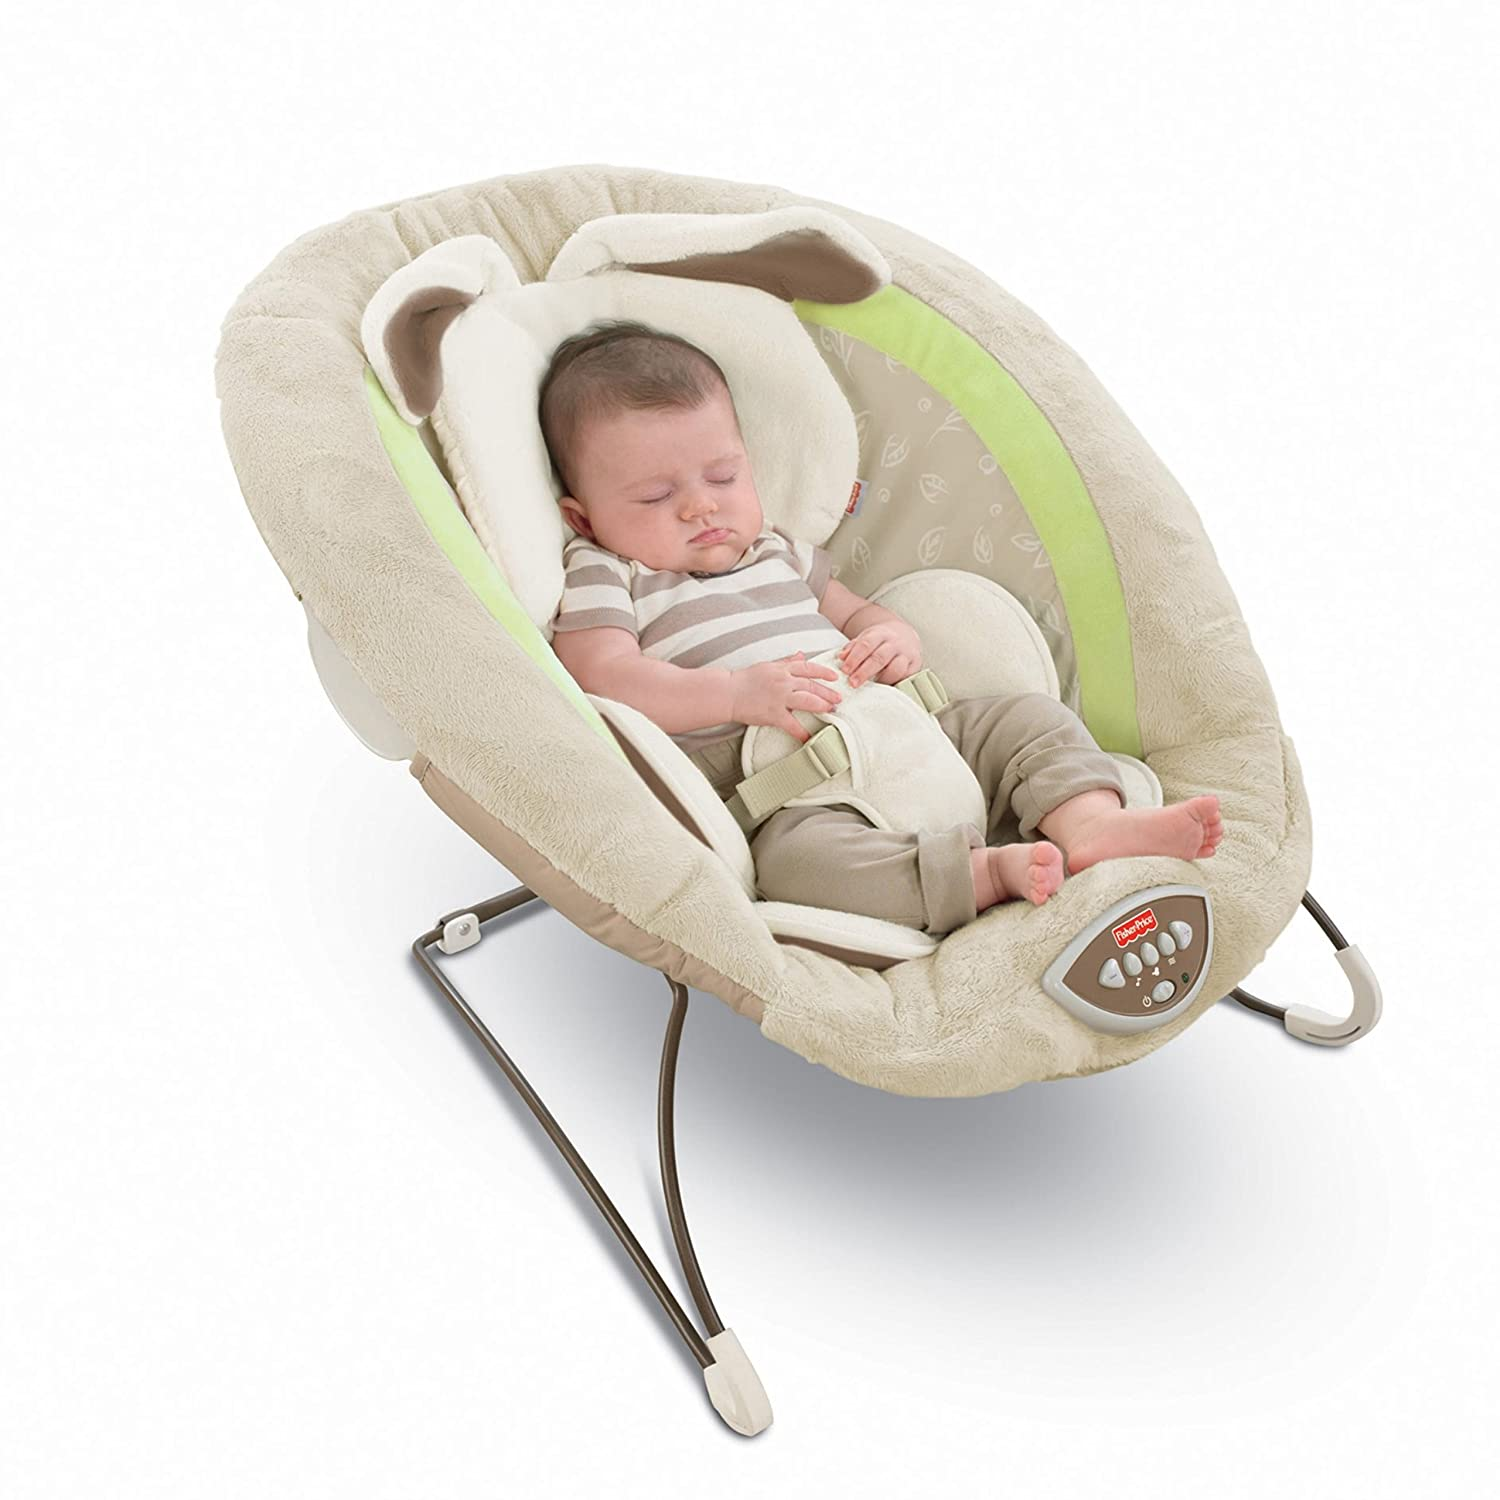 Amazon.com : Fisher Price Deluxe Bouncer, My Little Snugabunny : Infant  Bouncers And Rockers : Baby